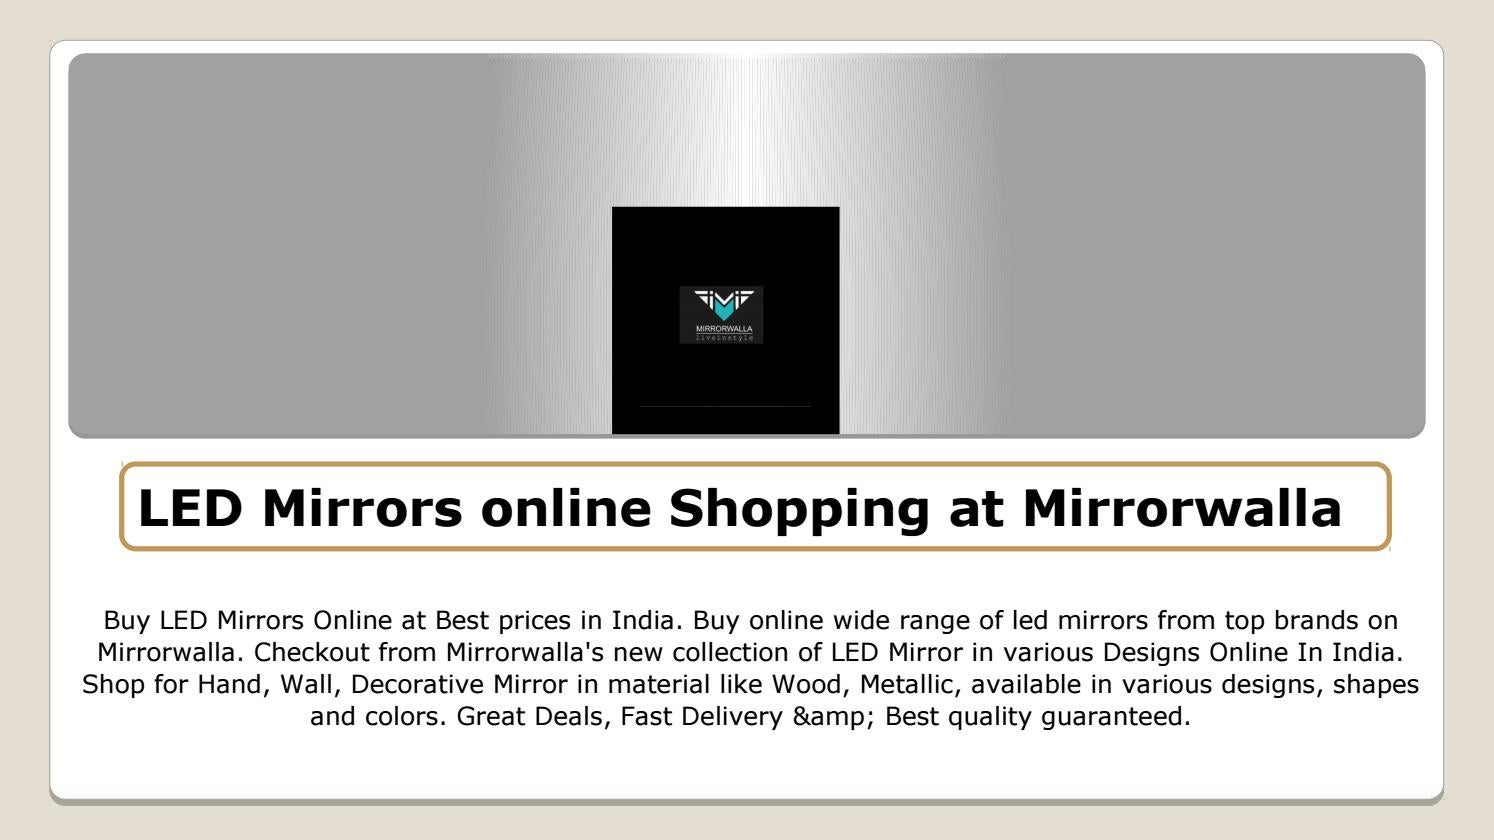 Led Online Shop Led Mirrors Online Shopping At Mirrorwalla